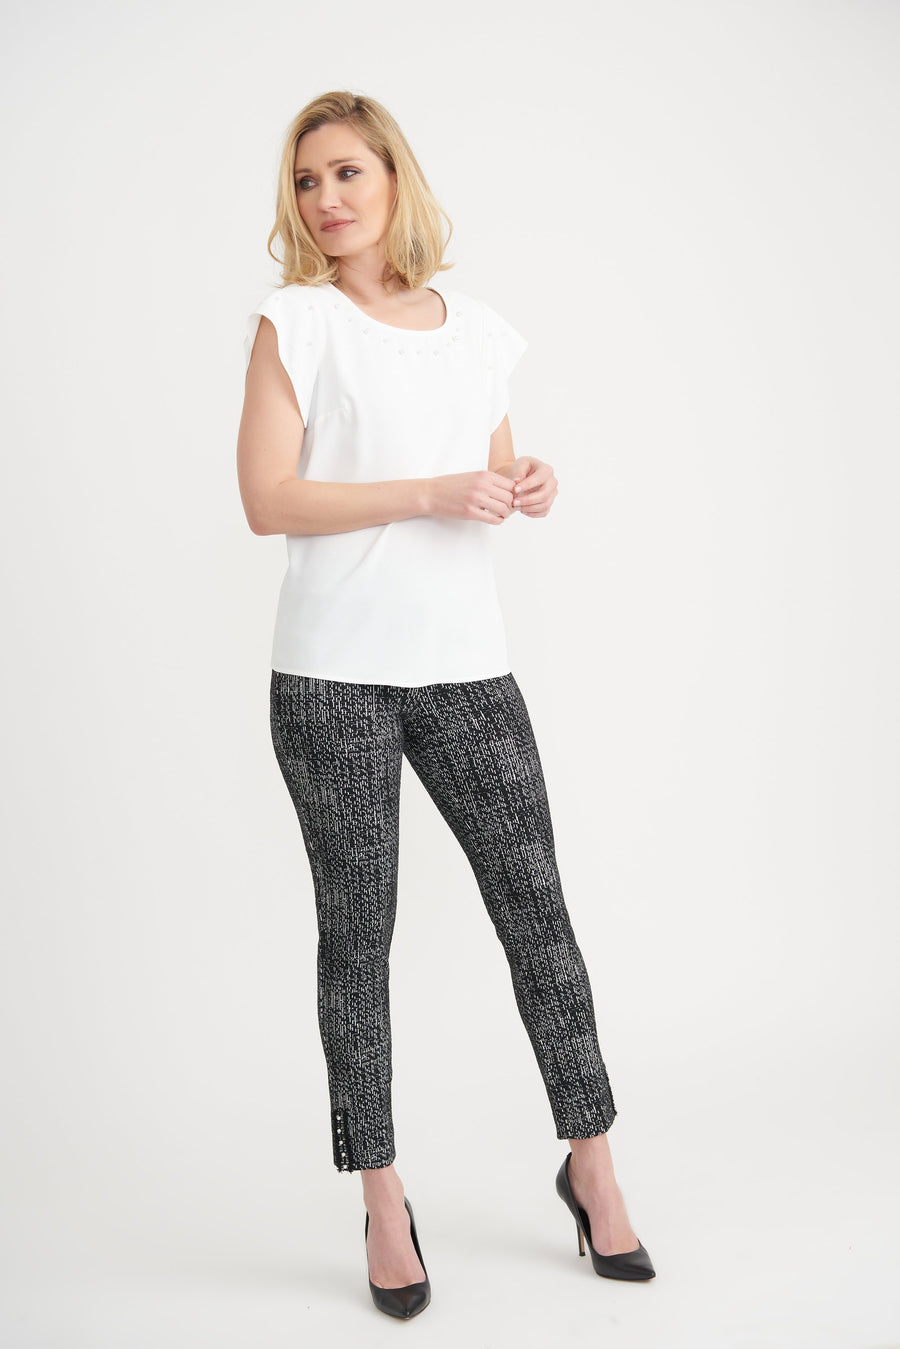 Joseph Ribkoff Ladies Pants 203350